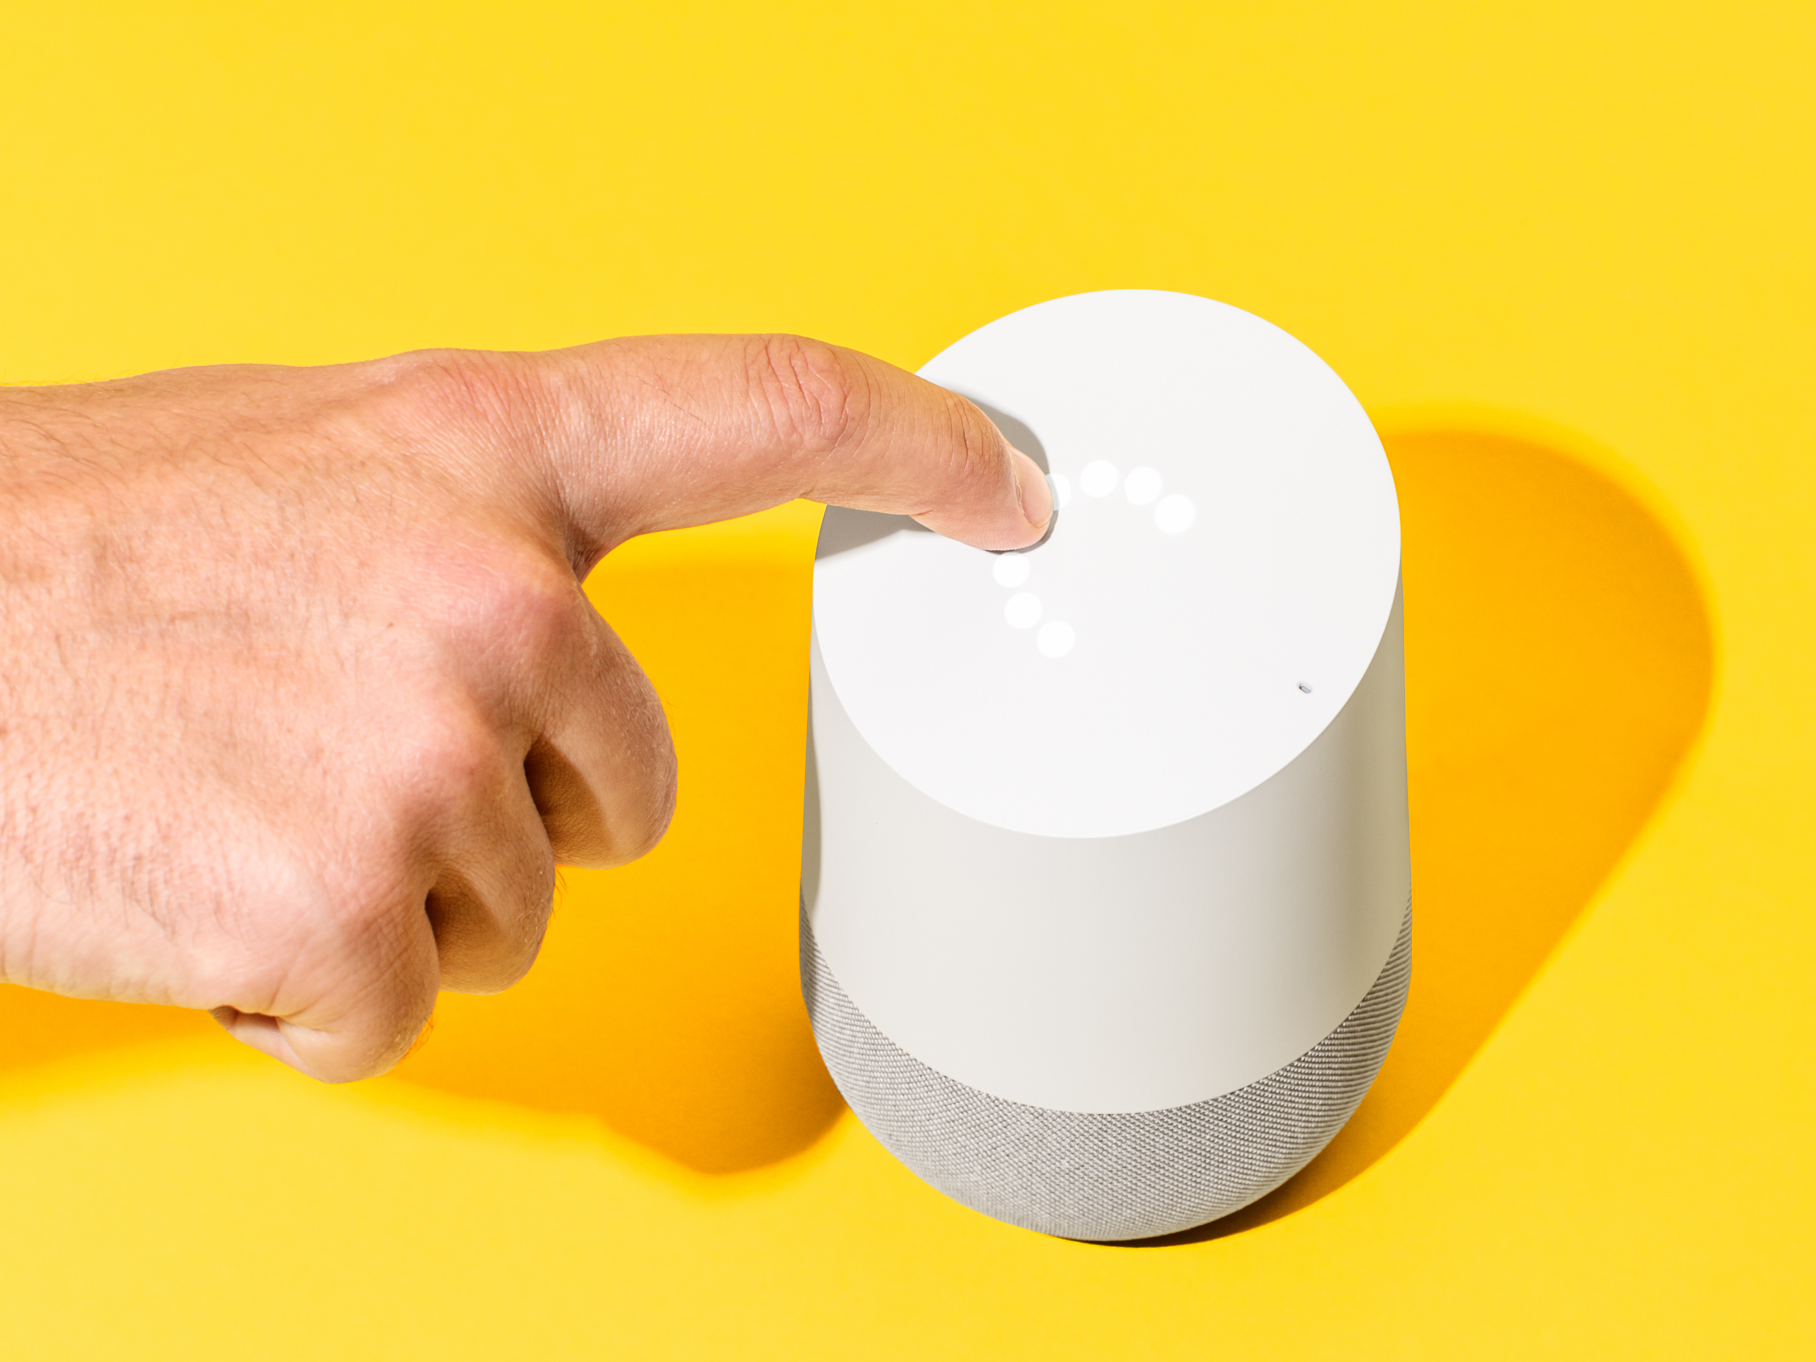 17-of-the-coolest-things-your-google-home-can-do